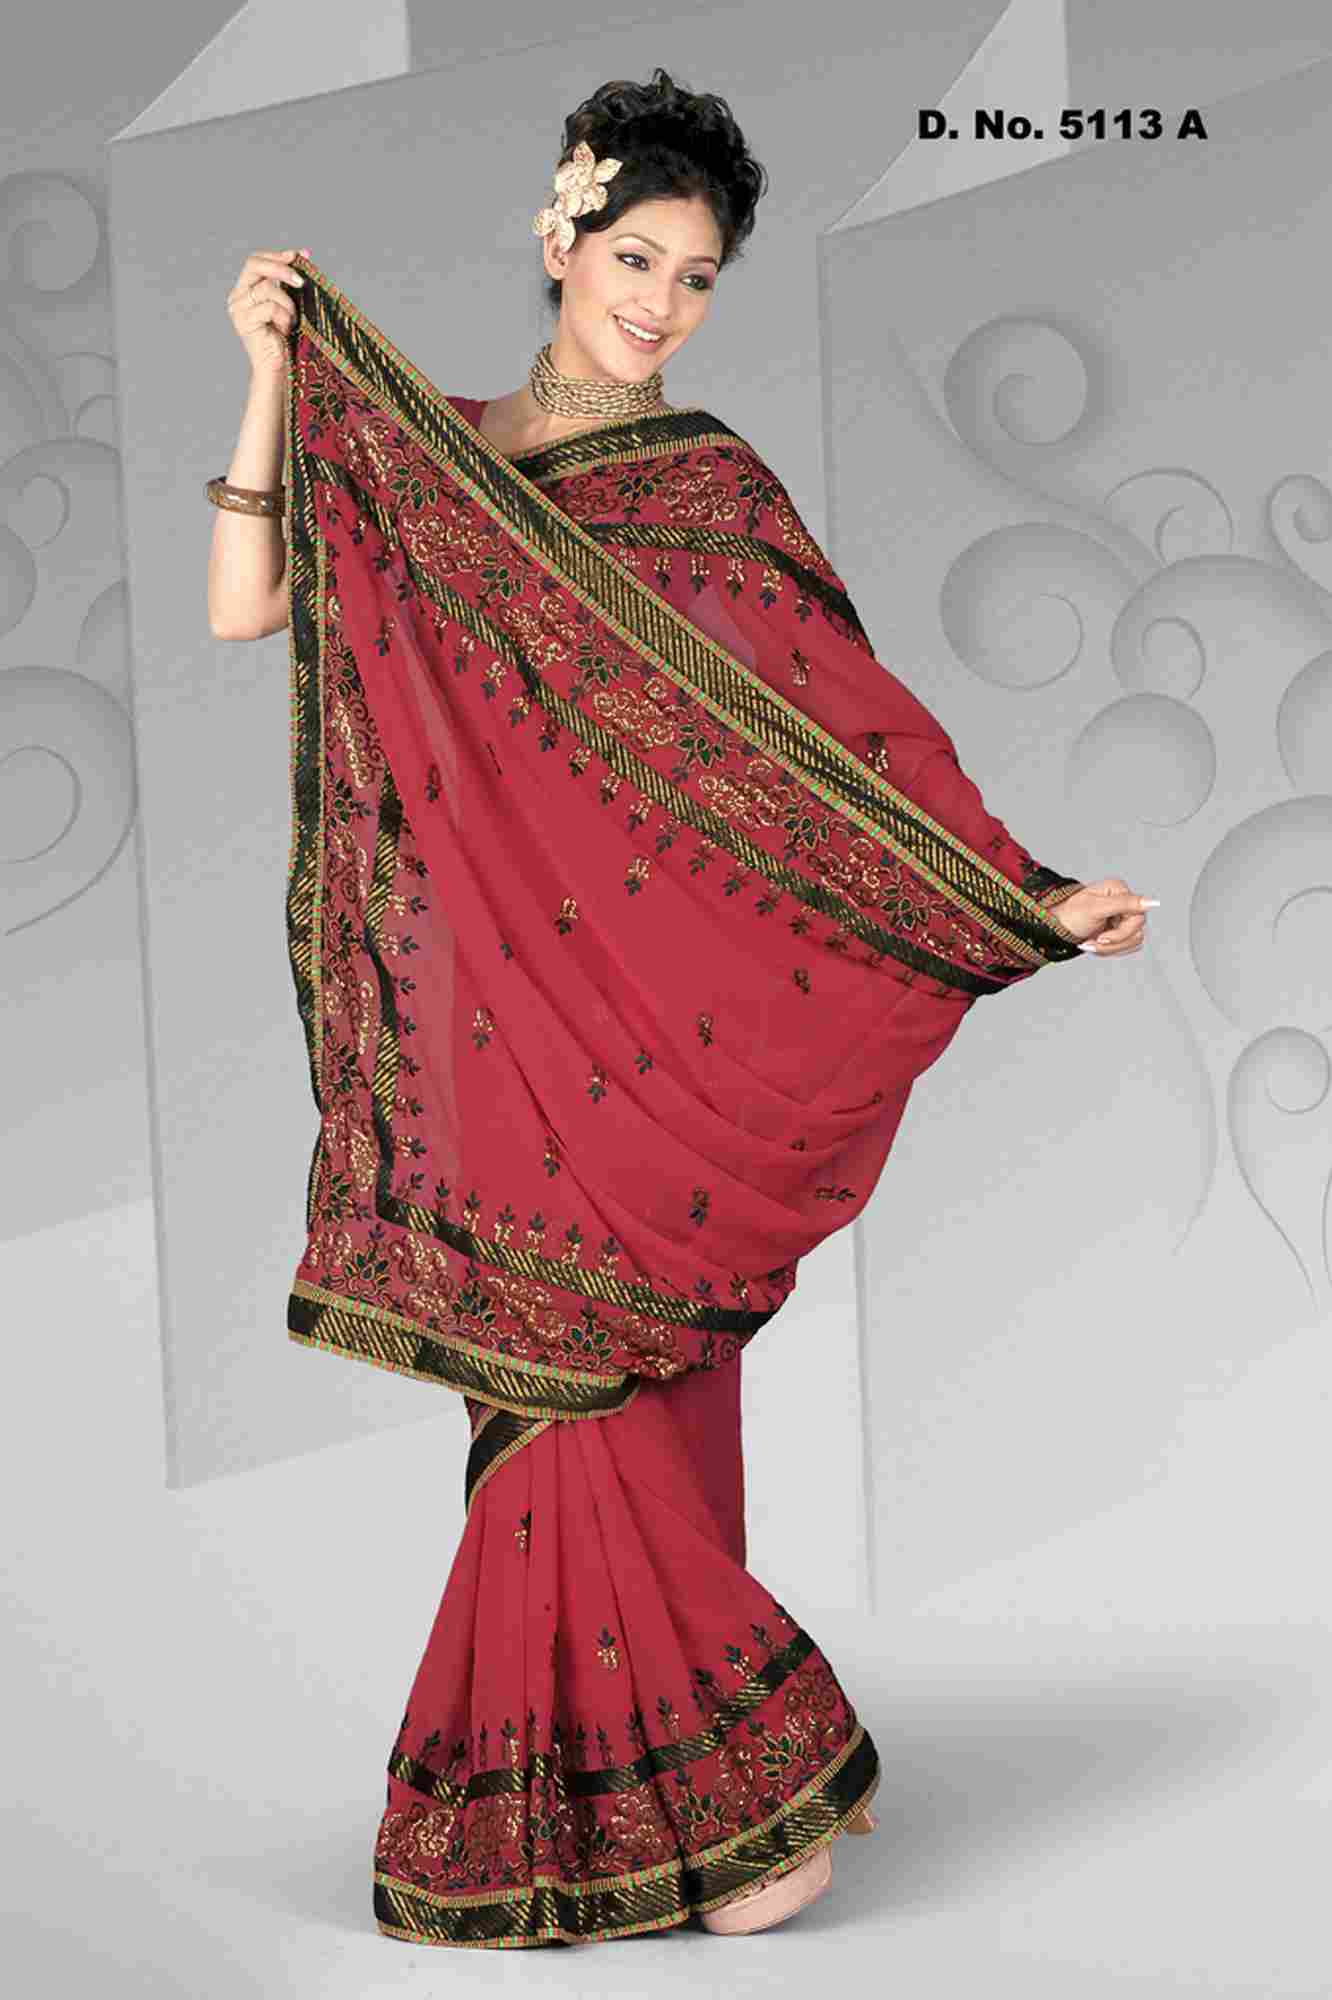 Atula Evening Party Wear Georgette Sari